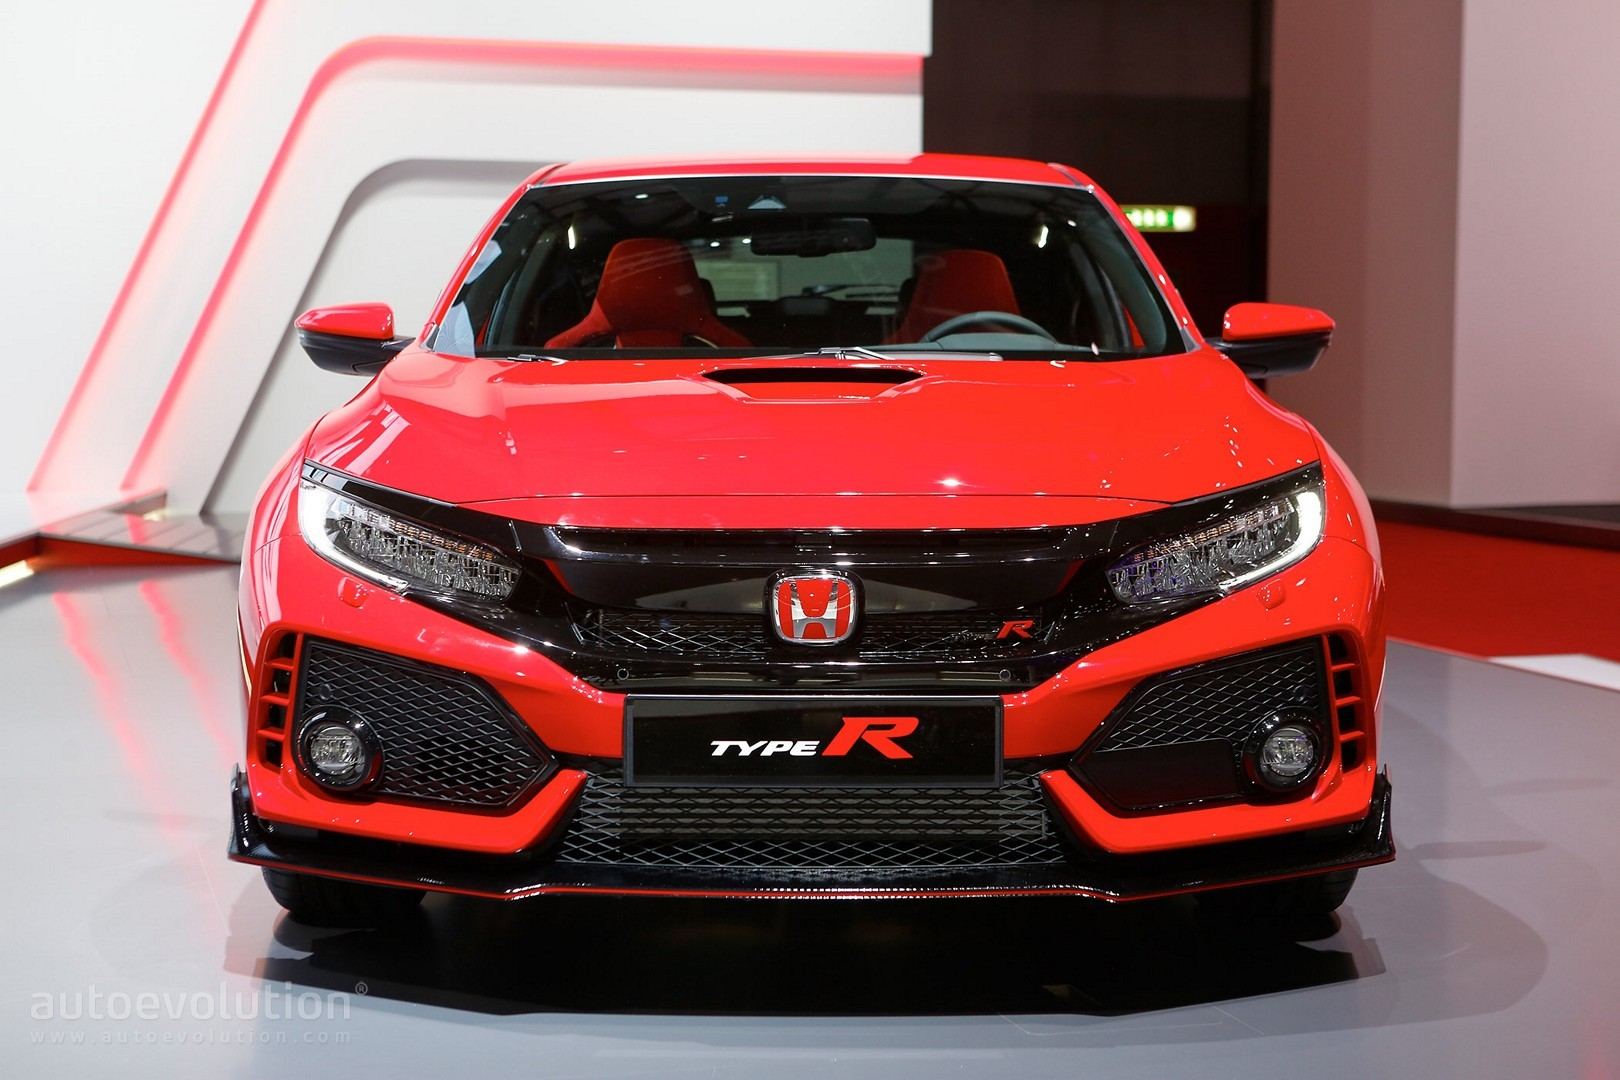 2018 honda civic type r makes production debut in geneva packs 320 hp autoevolution. Black Bedroom Furniture Sets. Home Design Ideas